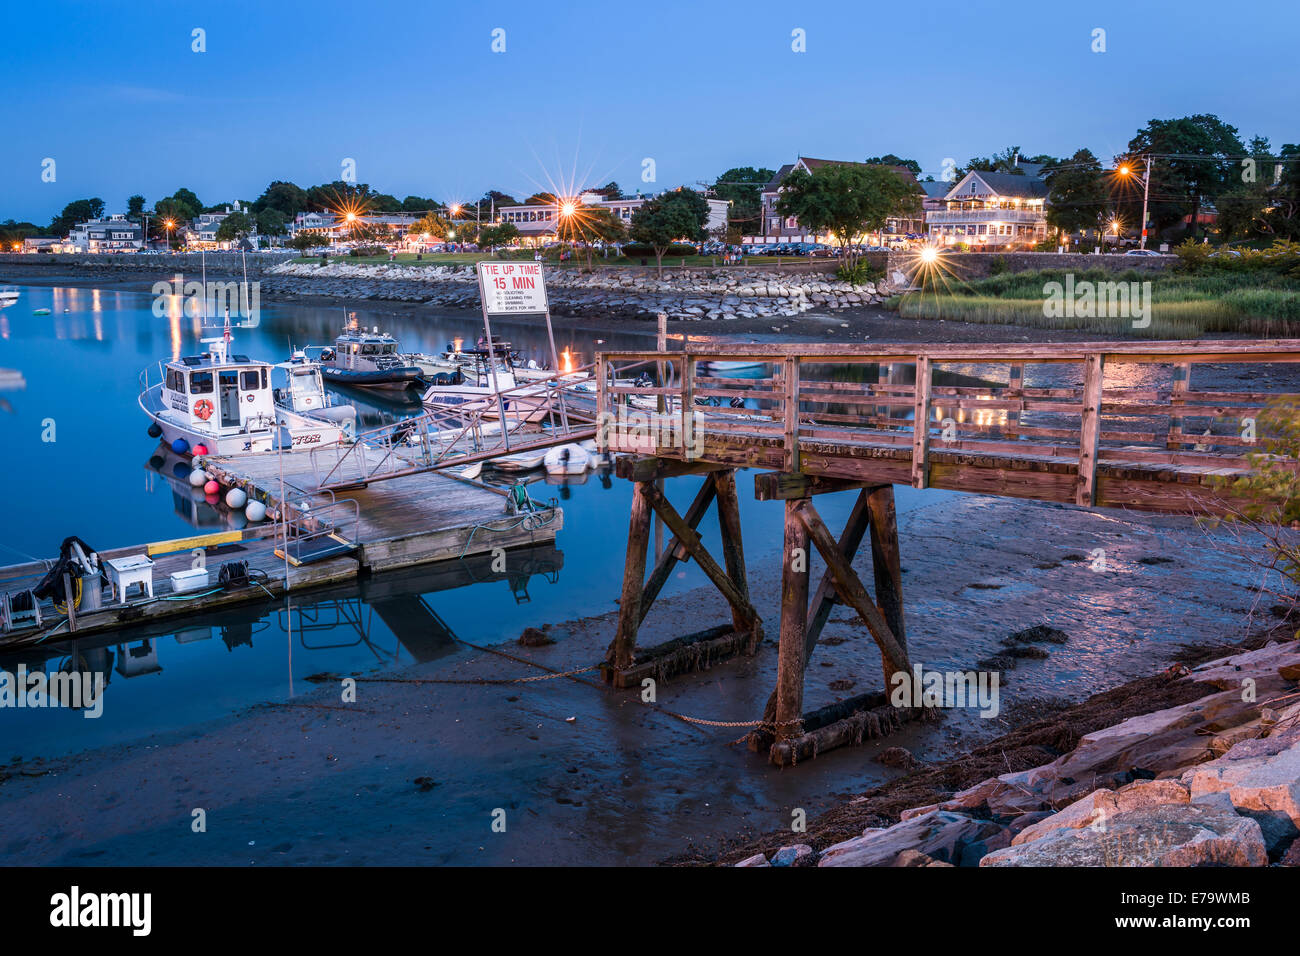 A pontoon leads to the small harbour on the seafront in Plymouth, Massachusetts - USA. - Stock Image